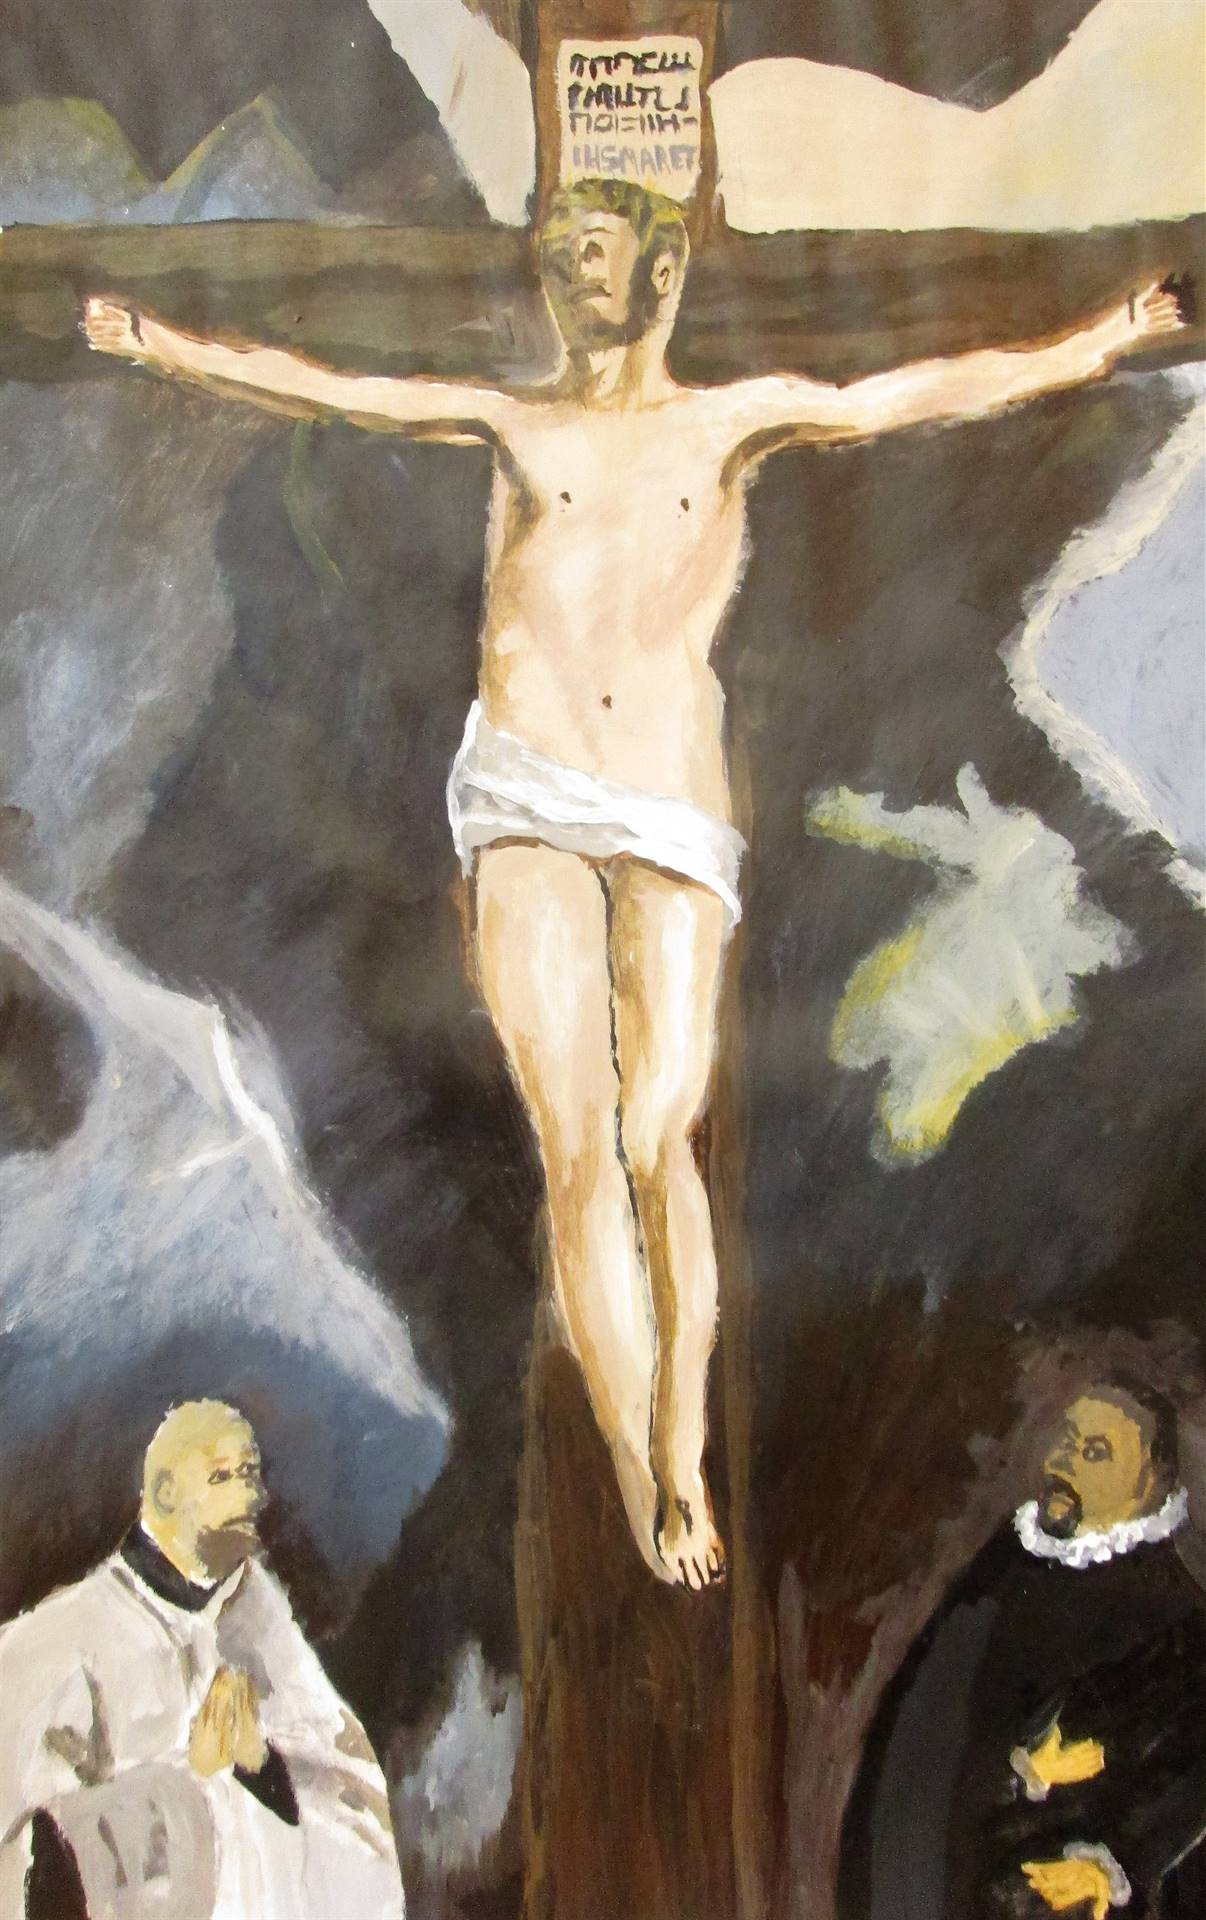 Image of student artwork based on the artist El Greco.